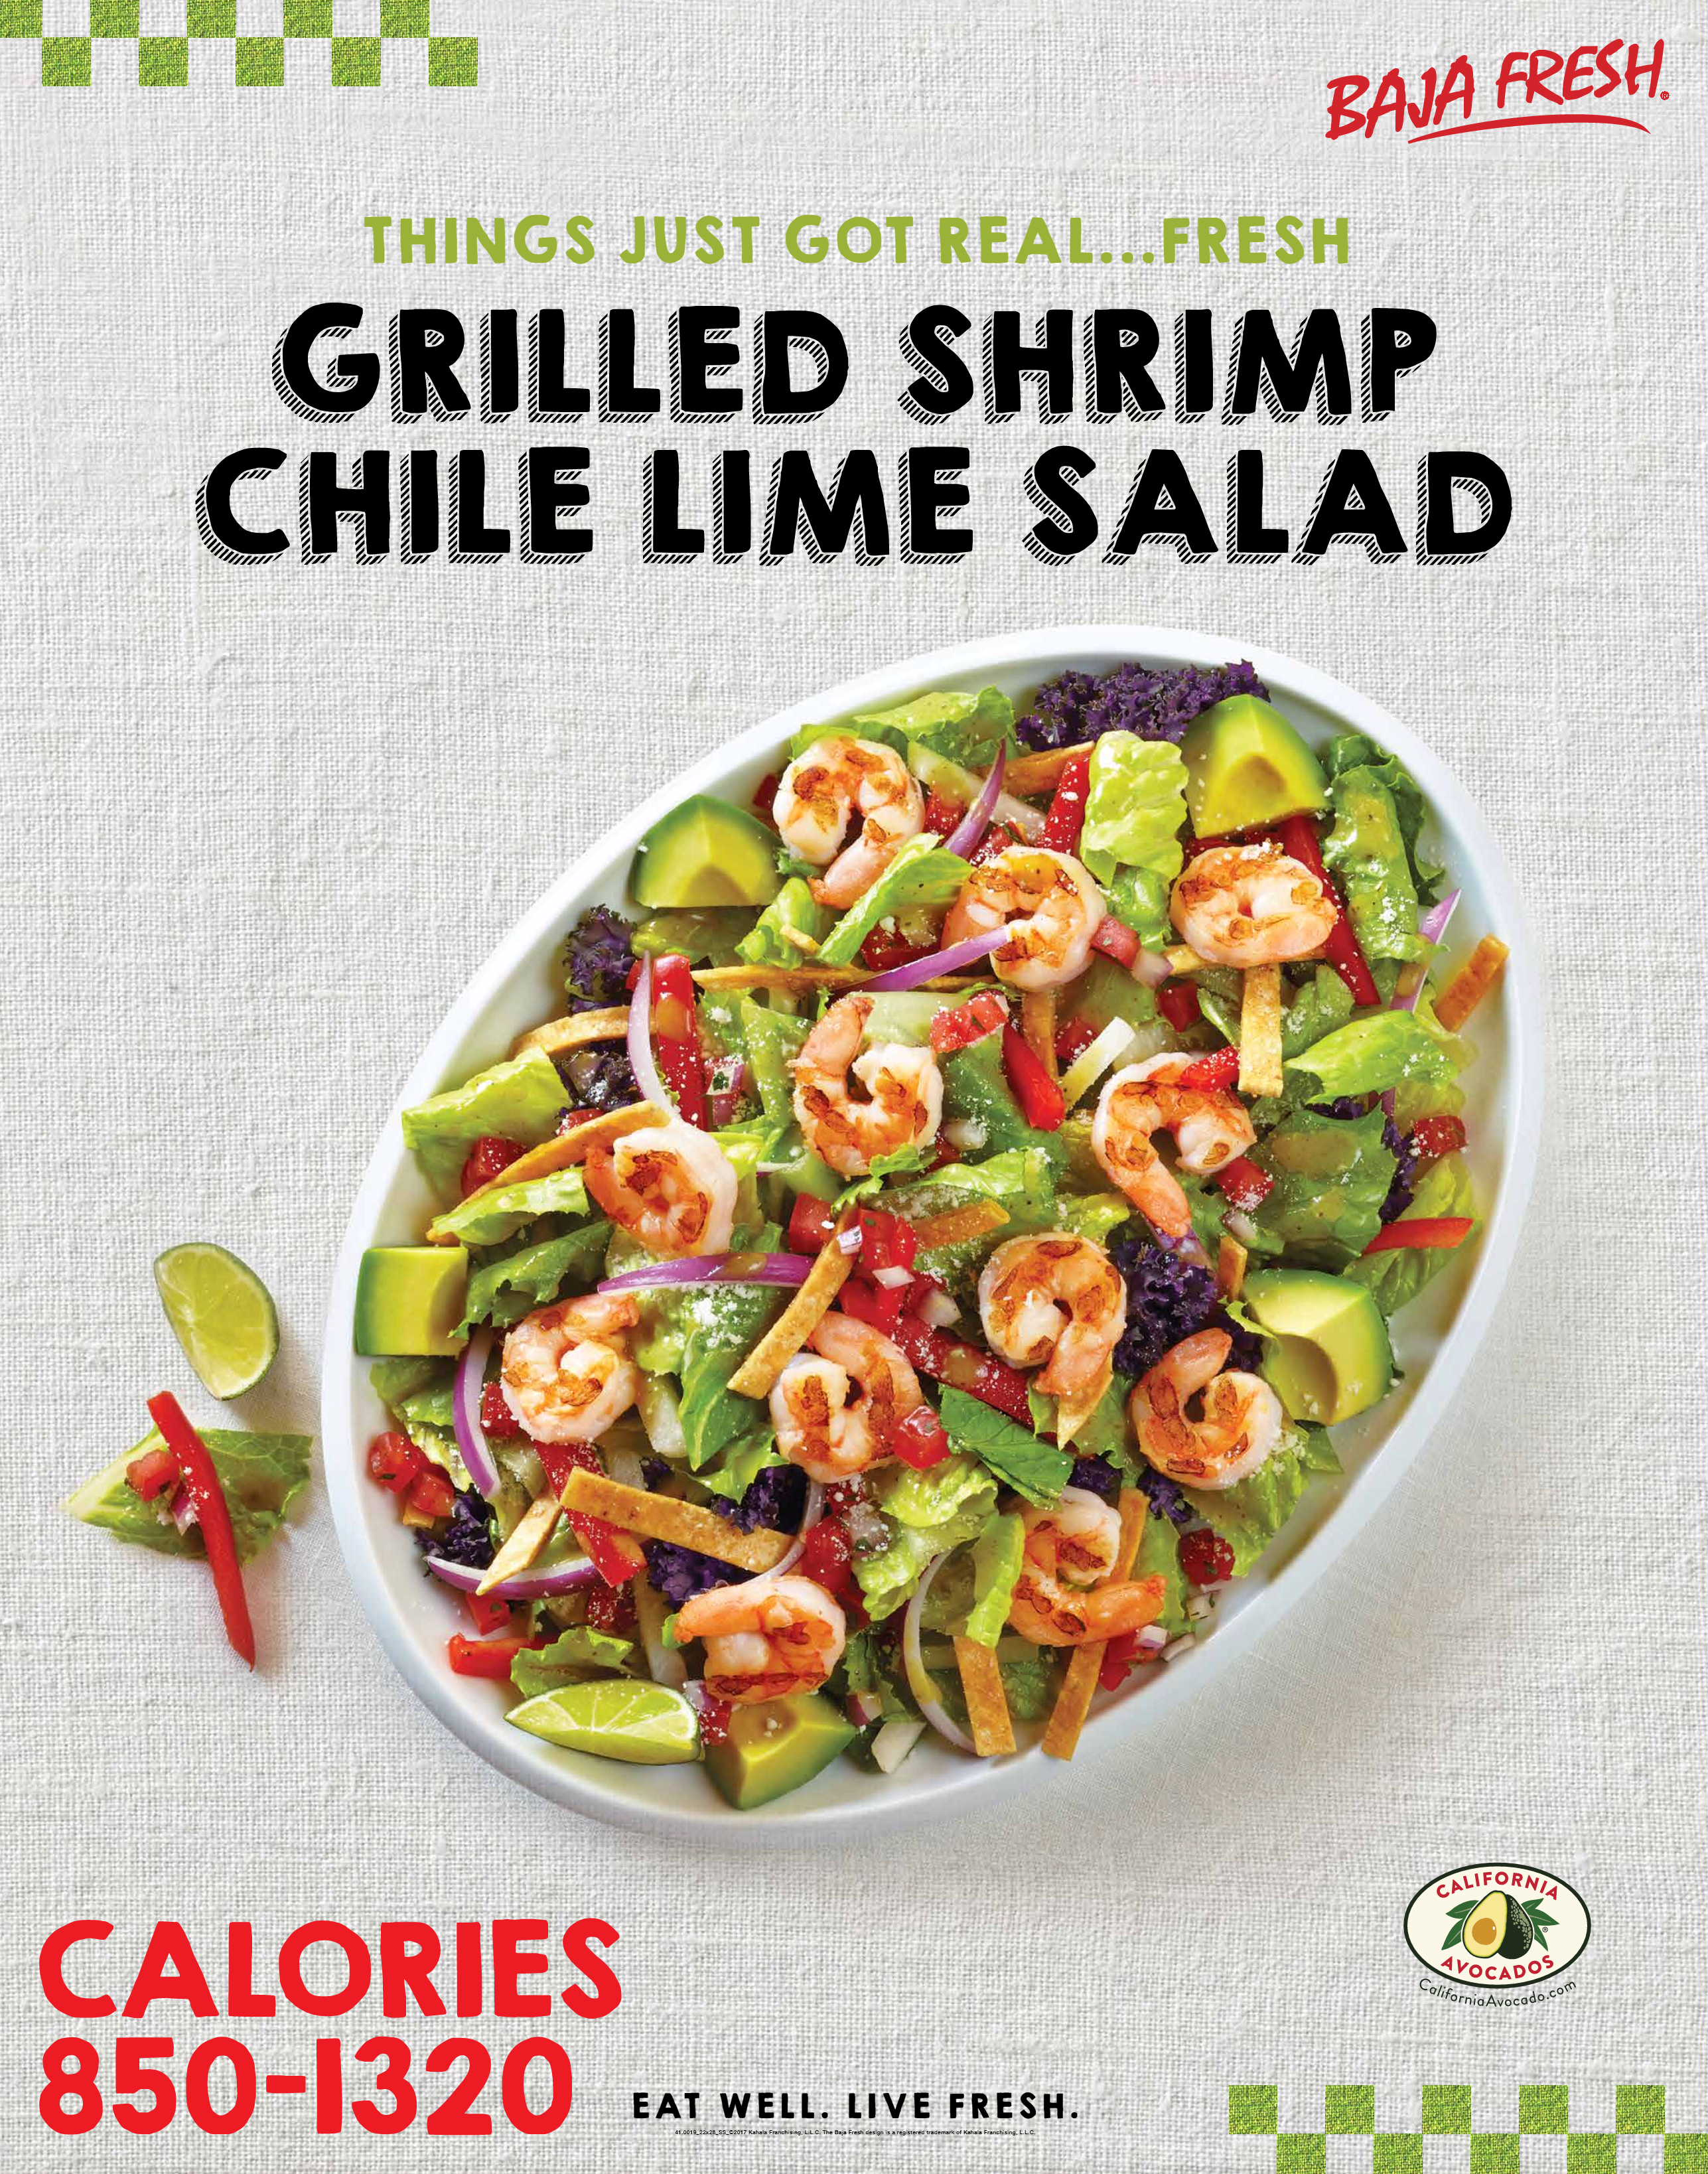 The Baja Fresh menu board features the new California Avocados brand logo and diced California avocado atop the Grilled Shrimp Chile Lime Salad.